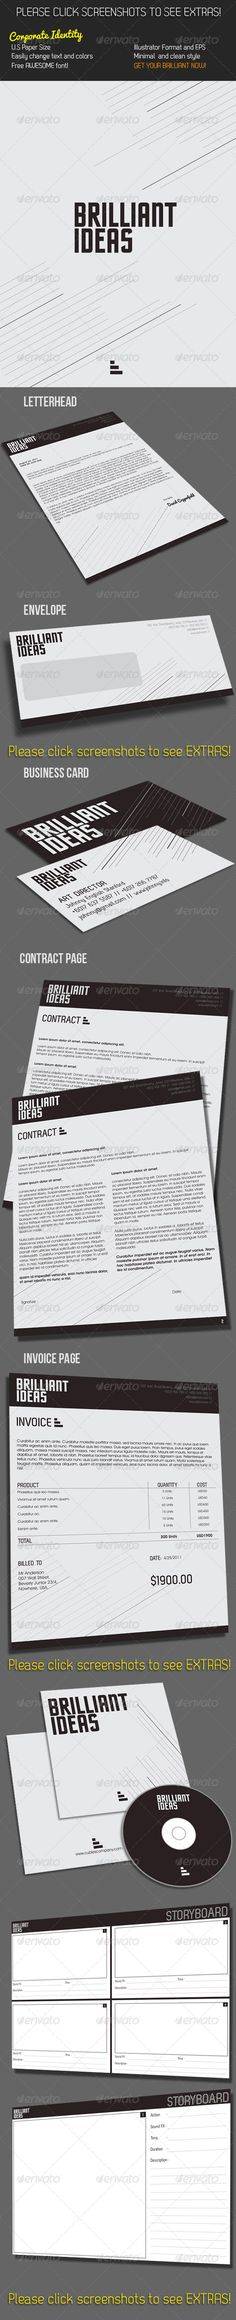 Brilliant Corporate Identity  #GraphicRiver             Brilliant Ideas Corporate ID. This is a simple and clean design for corporate id suitable for any company or agency.   Information :   1. Letterhead (ALL IN U.S PAPER SIZE) 2. 2 Business Cards (front and back) 3. Envelope 4. 2 Contract Page layout 5. Invoice Page 6. CD Book sleeve 7. 2 Storyboard Layouts (NEW)   File Included   1. Illustrator Format & EPS 2. CS3 & CS4 Format 3. Bleed ready   Easily to change font and color; Fully…